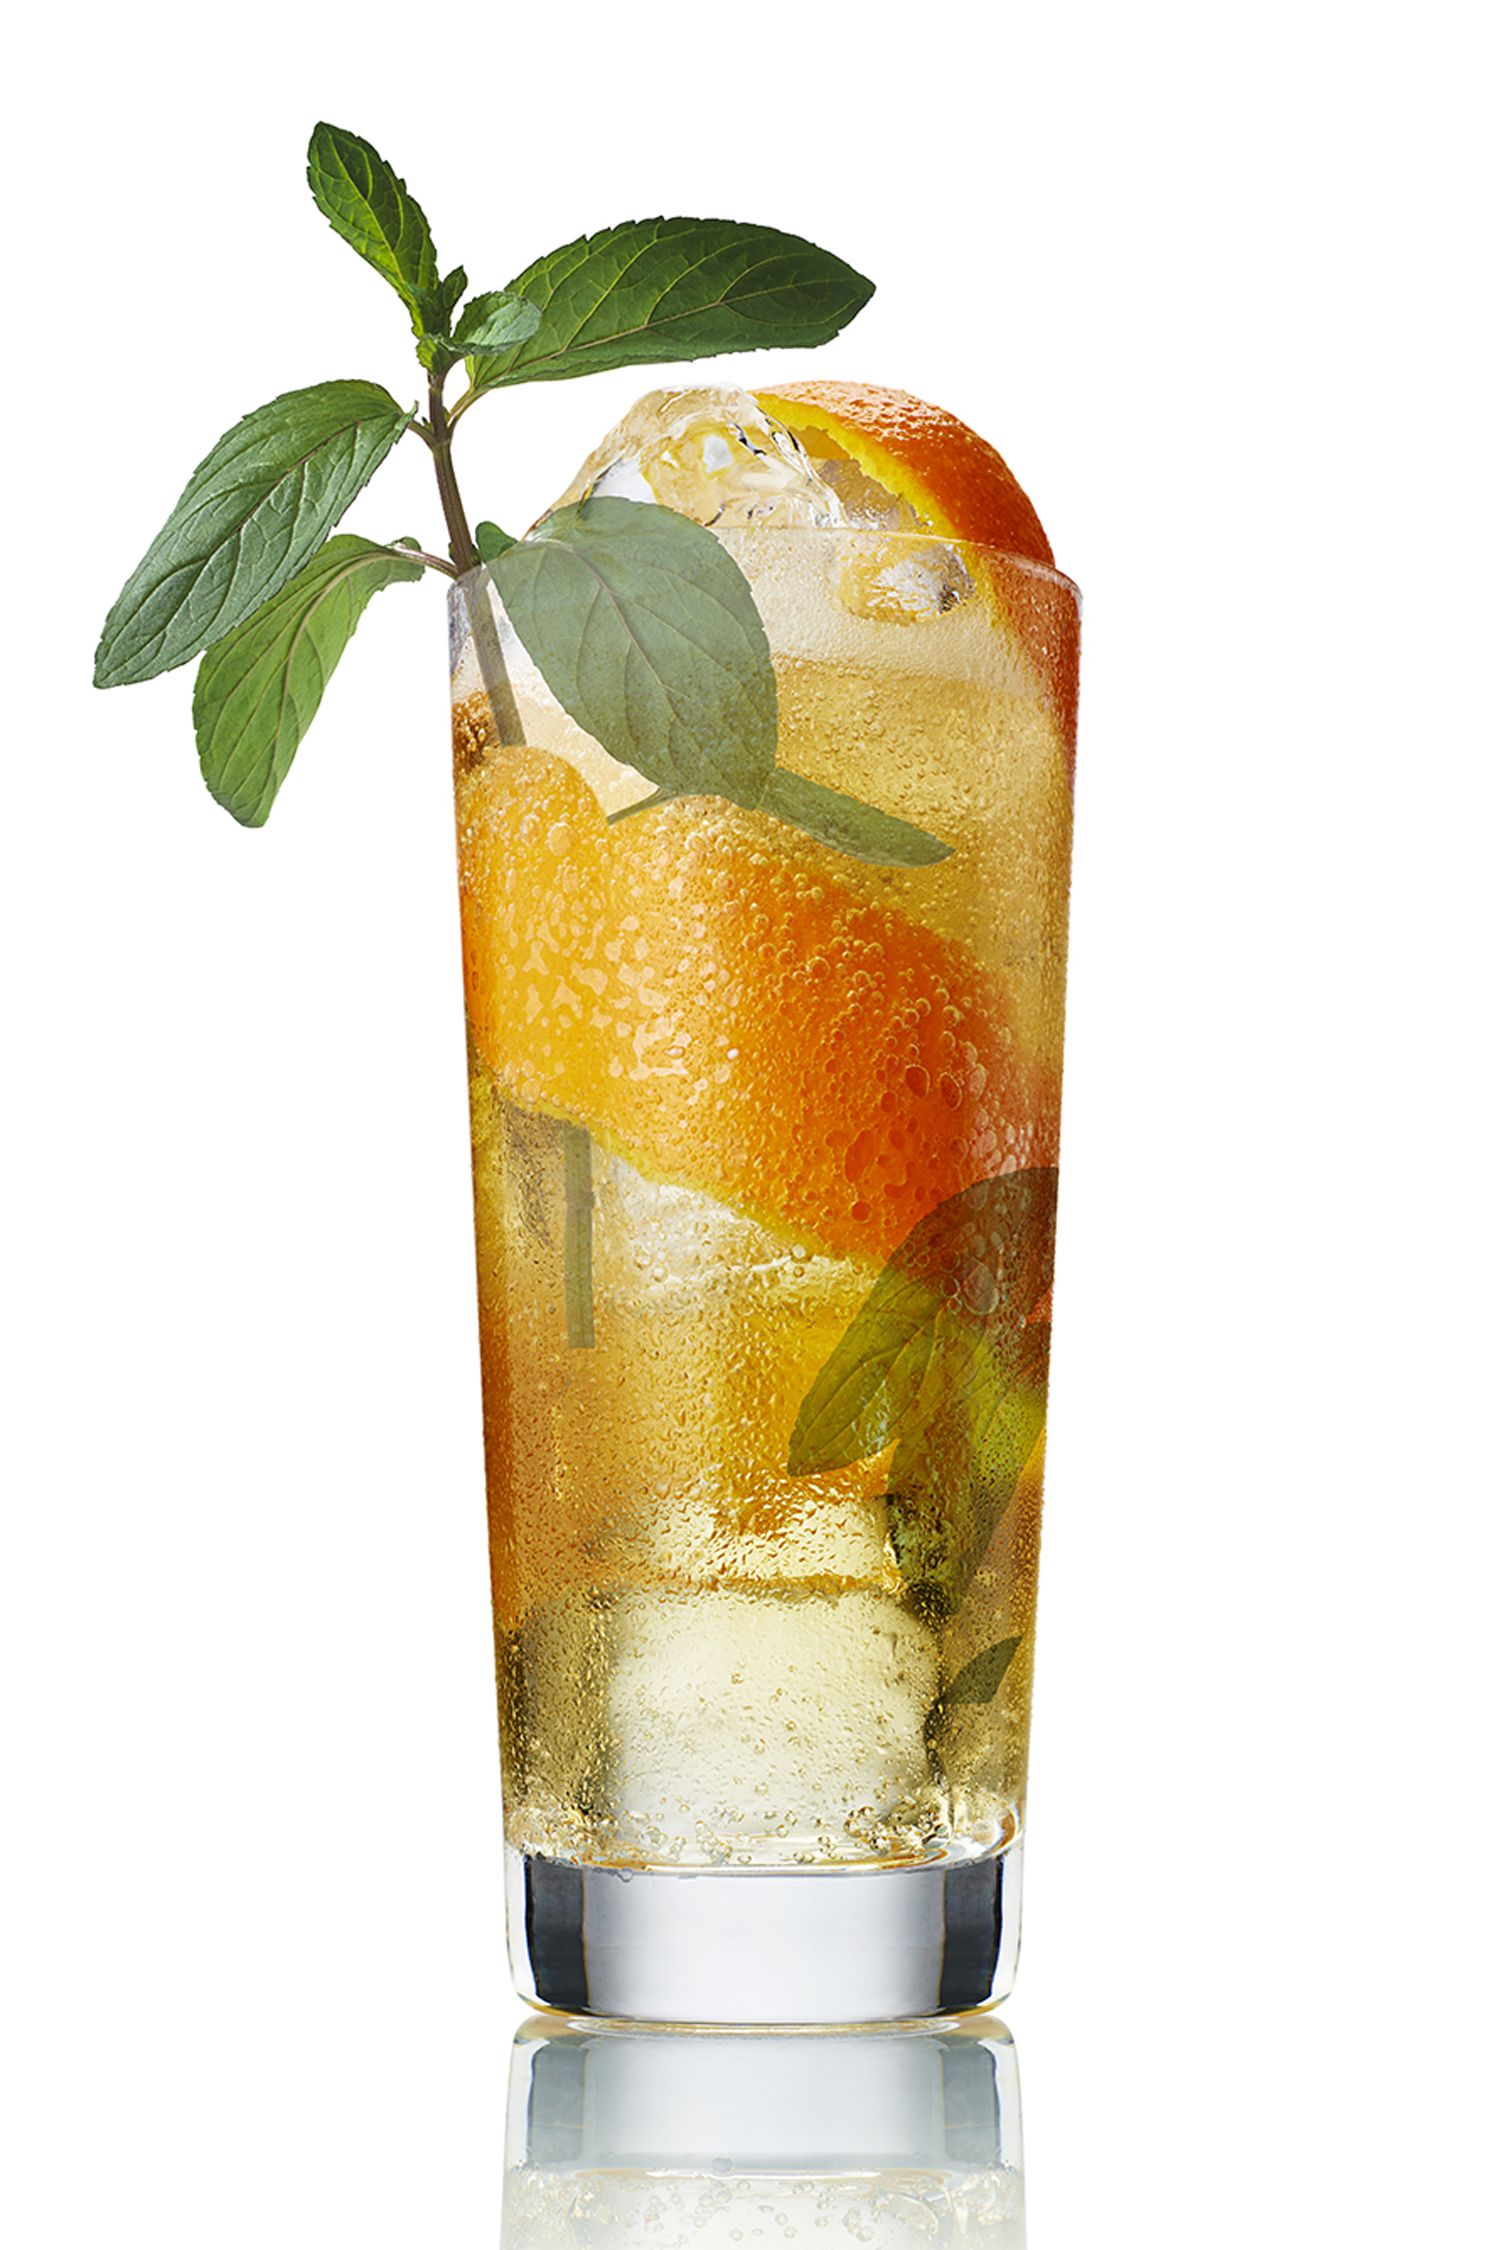 <p><strong> The Drink </strong></p><p><strong></strong>If straight vodka on the rocks isn't your thing, a fruity, slightly sweet Smash may be your new libation of choice. Sip it through a straw—no need to smudge your lipstick.</p><p><em></em><strong>The Recipe</strong><br></p><p>1.5 oz Belvedere Pure </p><p>Half an orange, cut into chunks </p><p>1 oz fresh lemon juice </p><p>1 oz simple syrup </p><p>4 mint leaves</p><p>Combine the orange chunks, lemon juice and simple syrup into a cocktail shaker; muddle, and add the Belvedere. Top with ice and shake vigorously before pouring through a strainer into an iced glass. Garnish with an orange slice and mint sprig.</p>